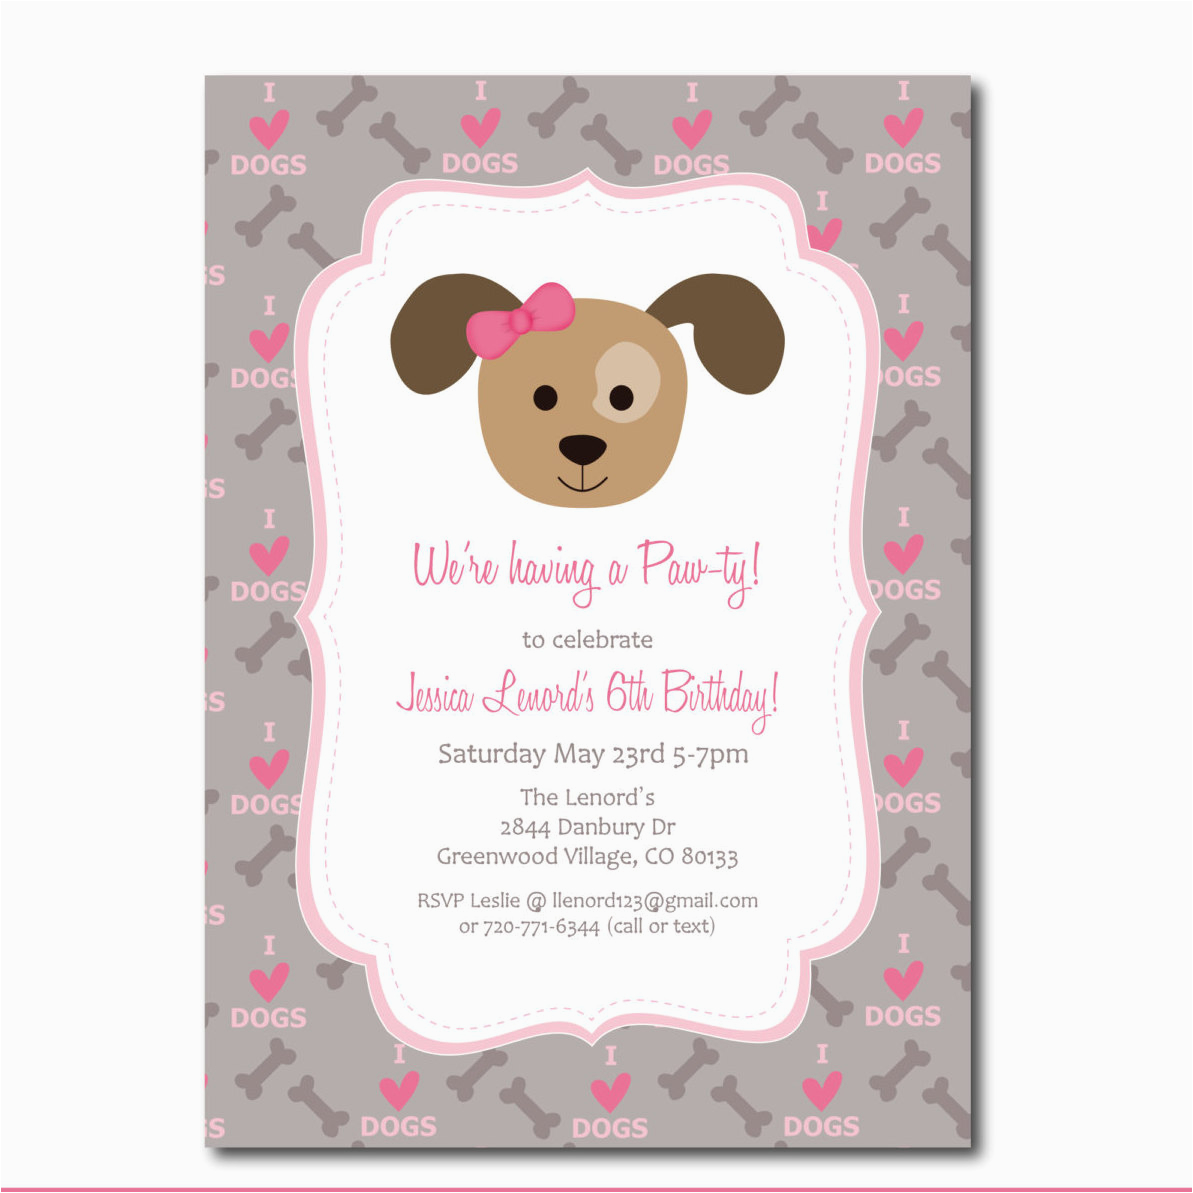 Puppy Birthday Invites Puppy Party Invitation with Editable Text Dog Party